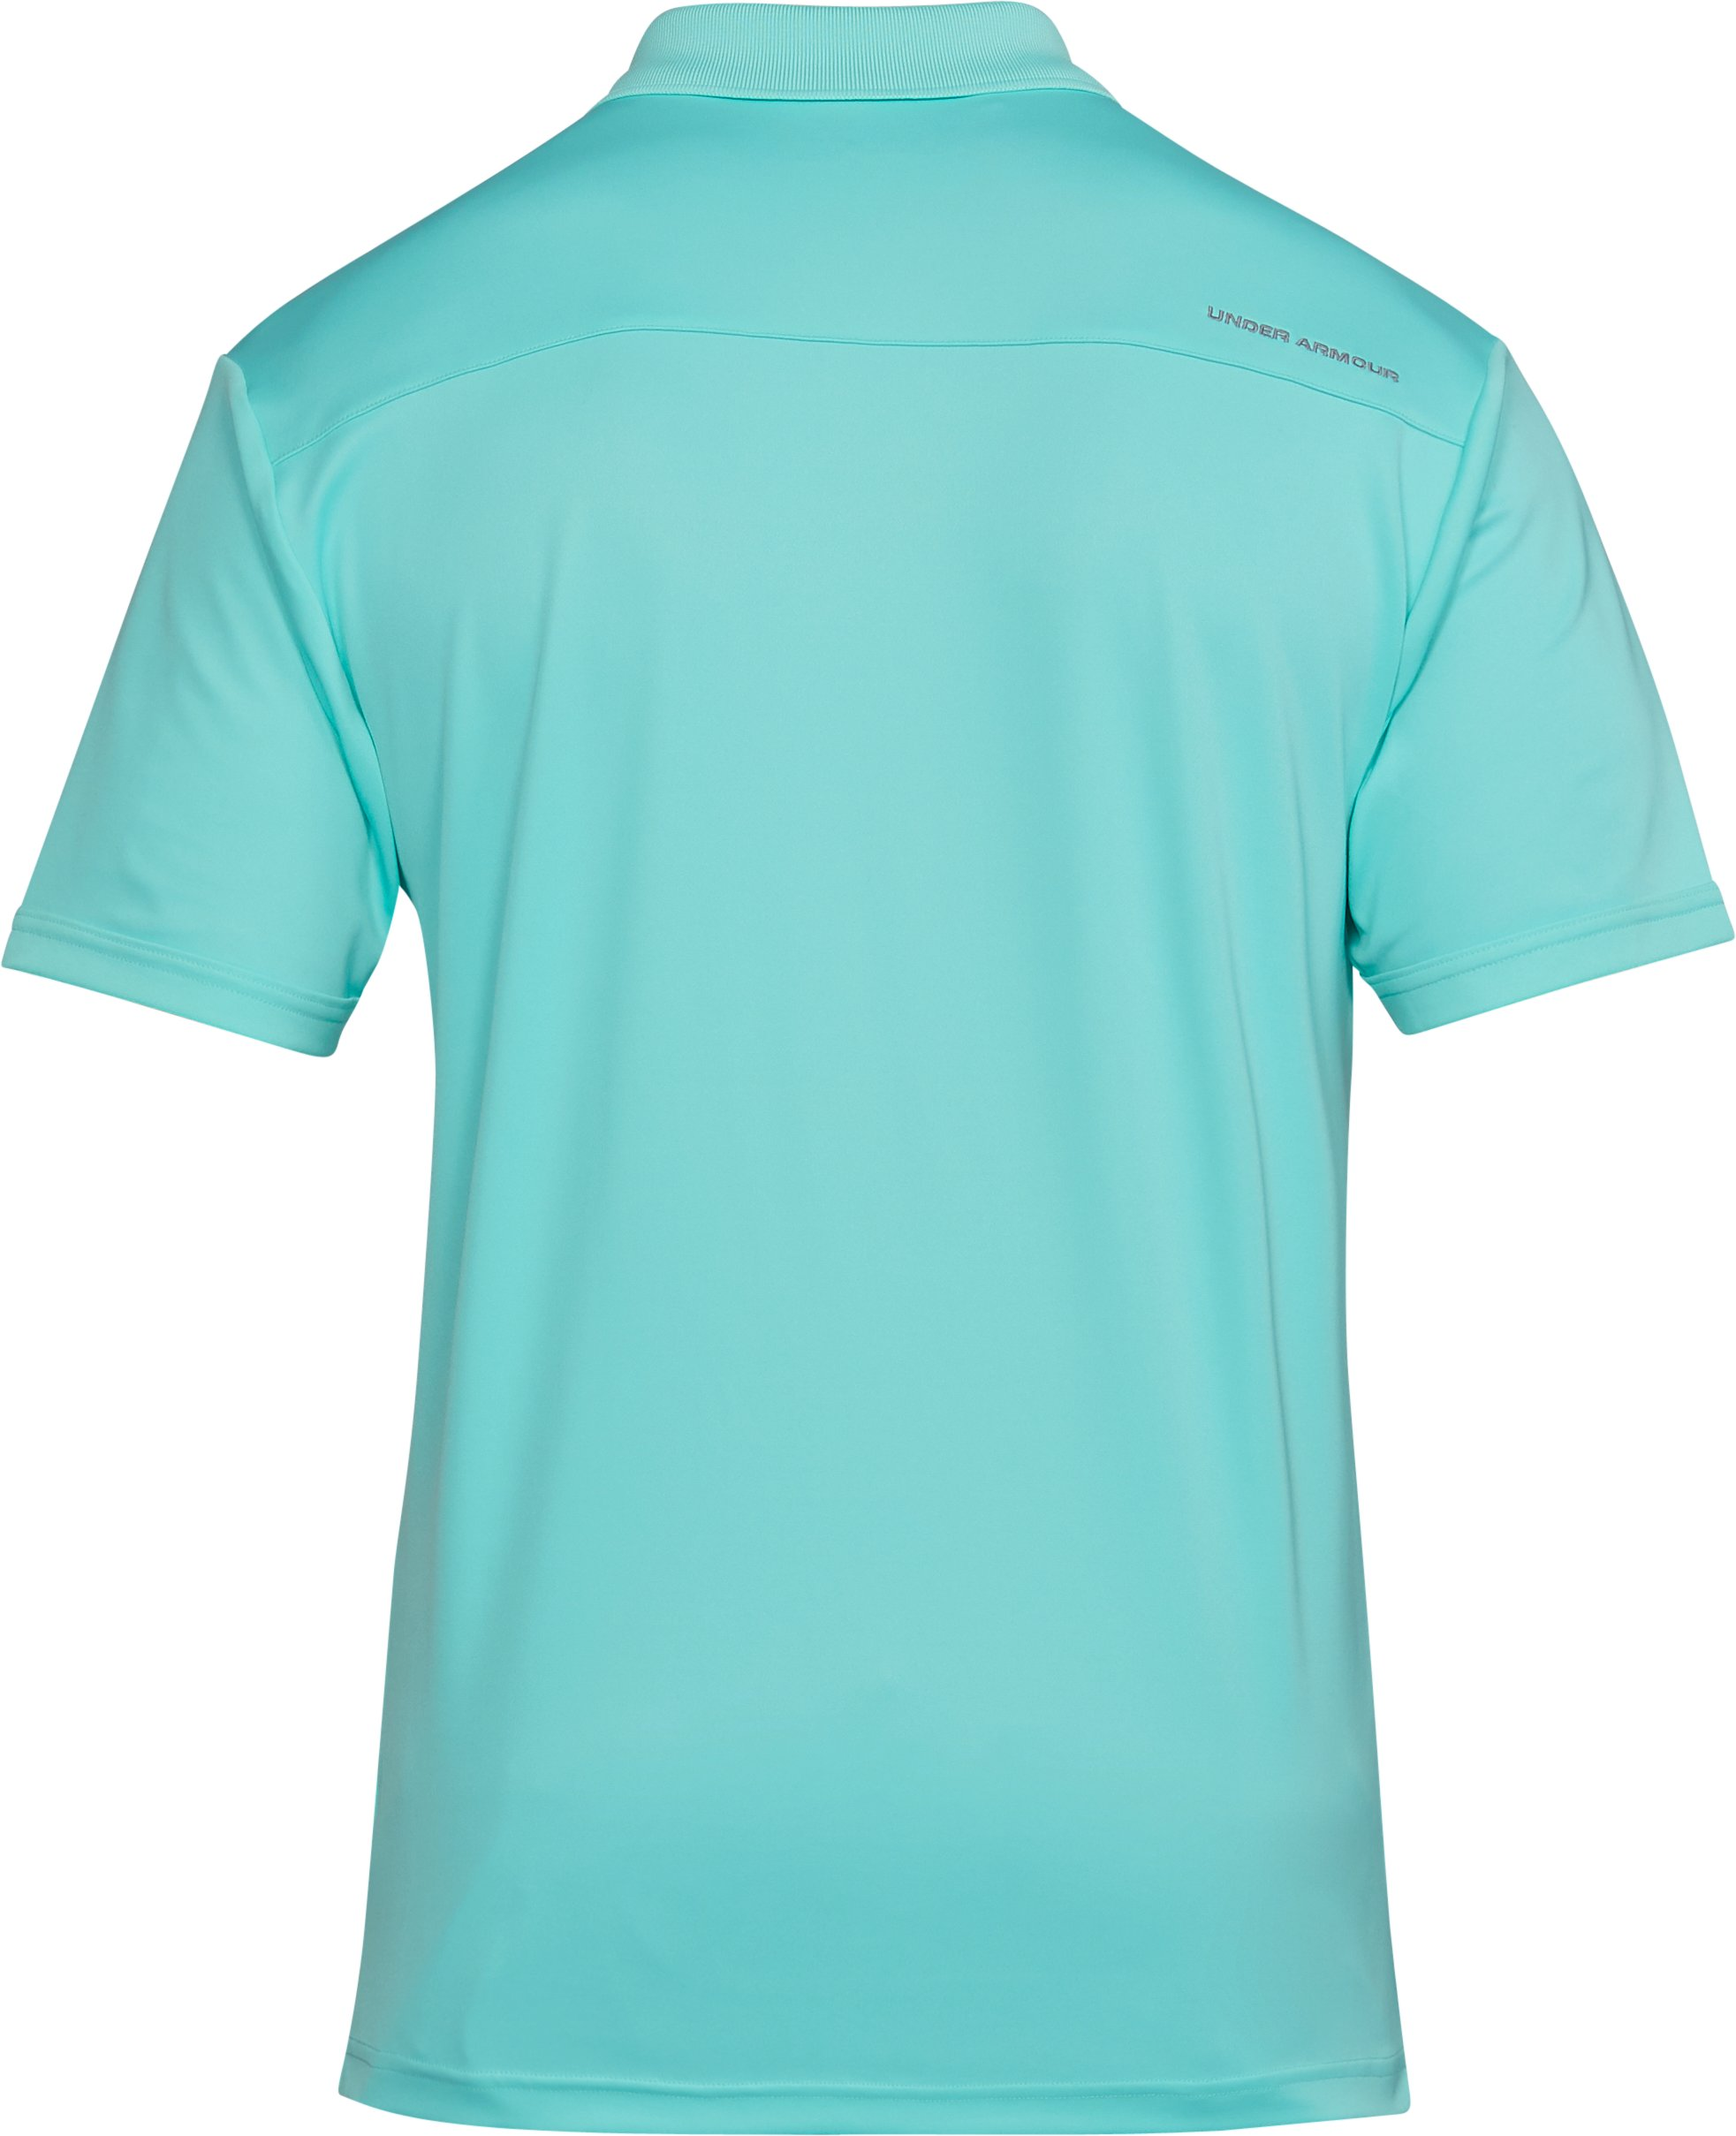 Men's UA Performance Polo, TROPICAL TIDE, undefined